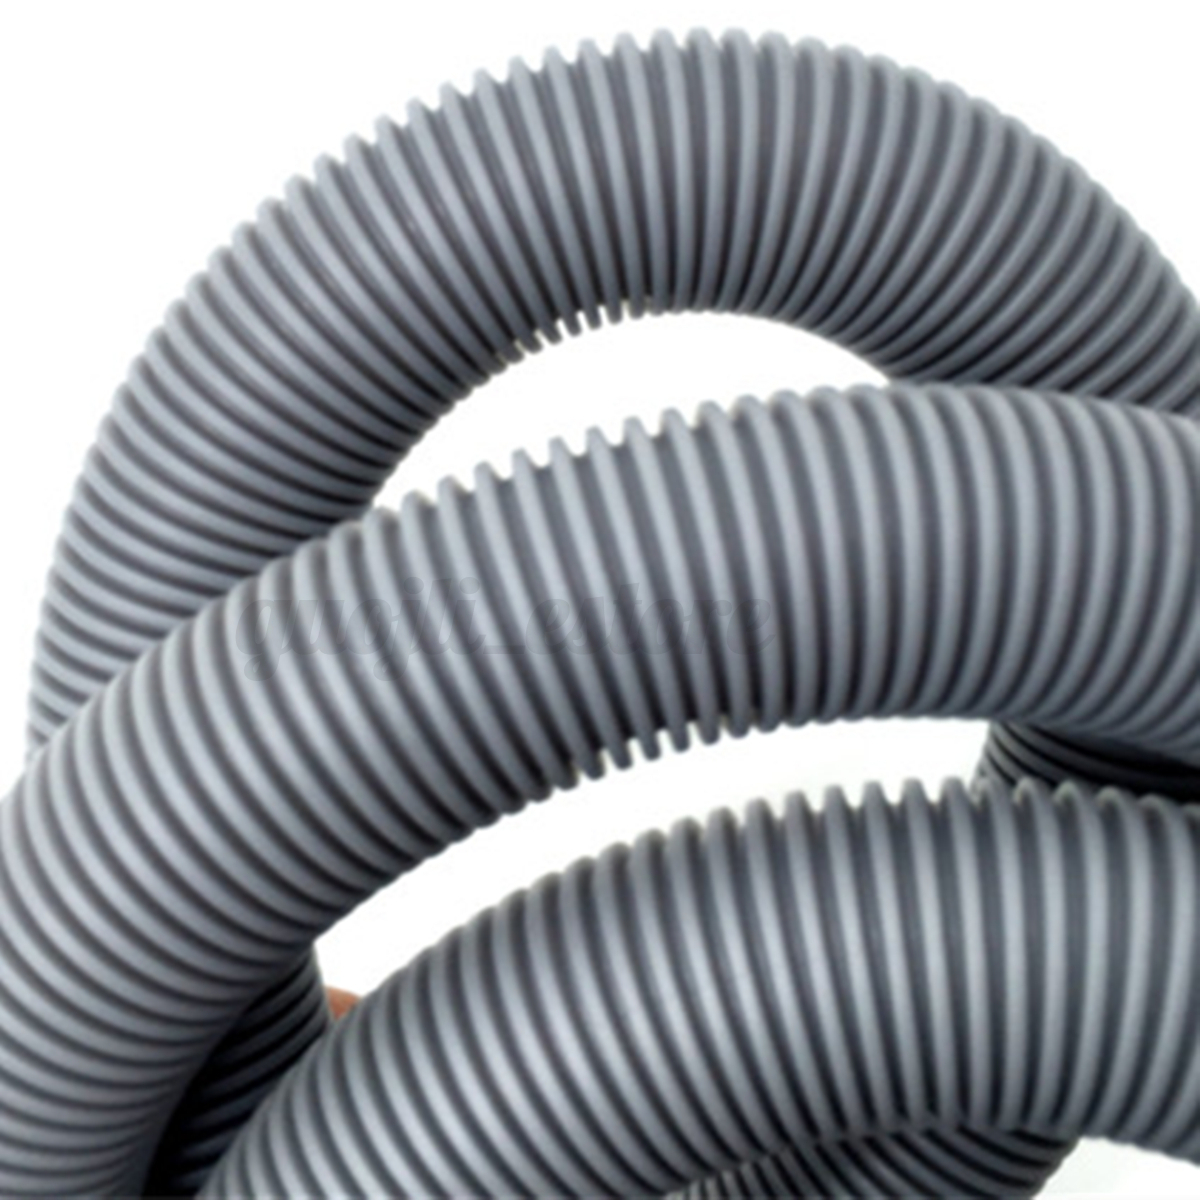 M length extension flexible water pipe drain hose